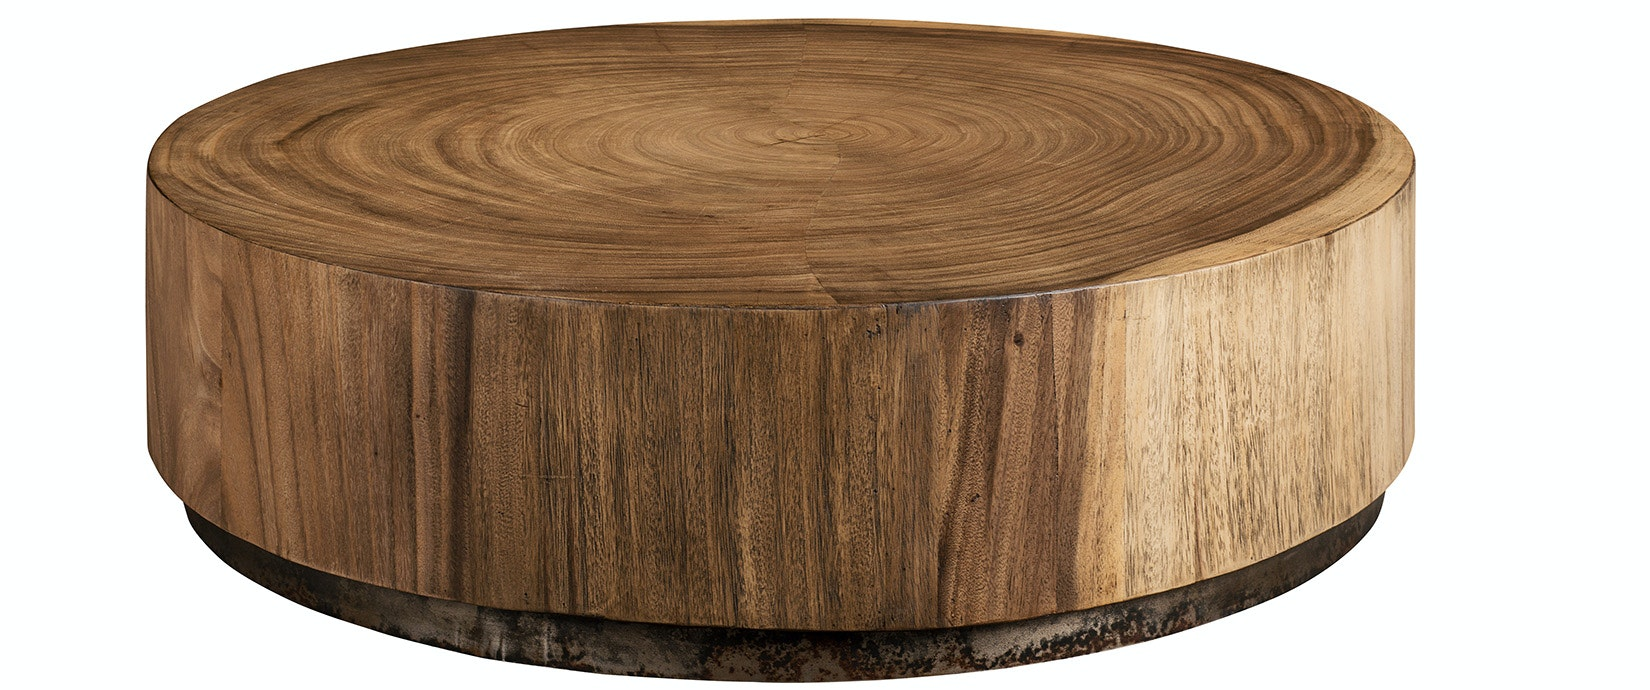 Cylinder Wood Coffee Table | ARTISTIC HABITAT | Boutique Furniture In  Redondo Beach, CA | Design Kollective